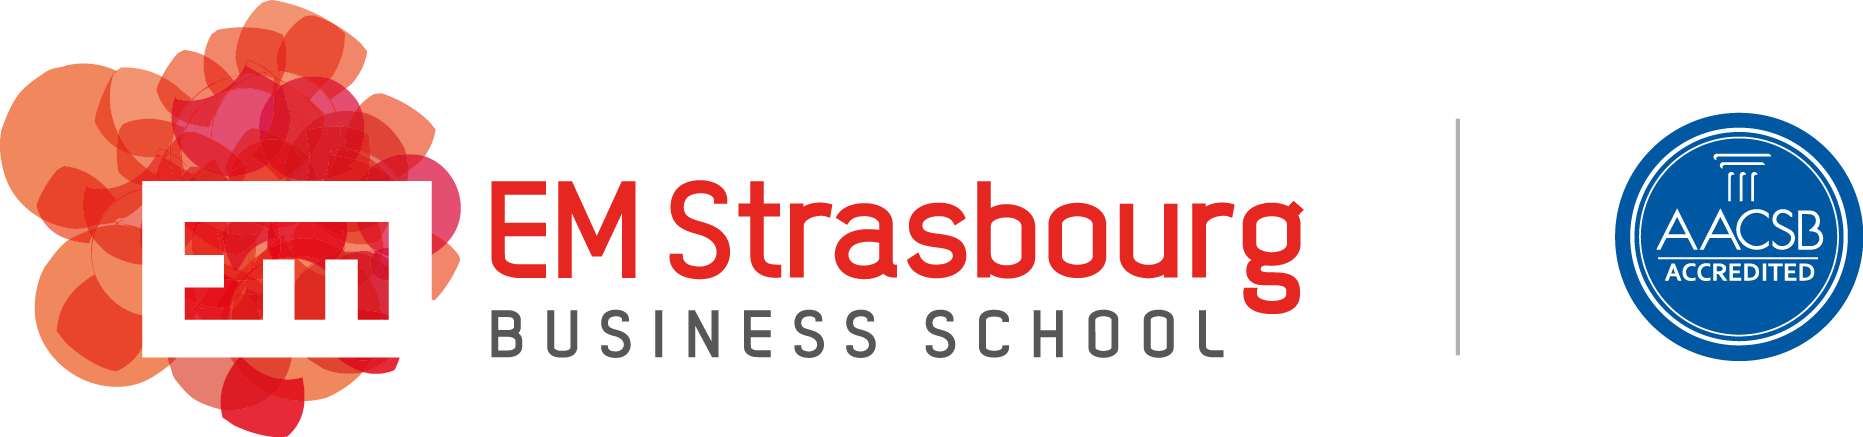 EM Strasbourg - Business School